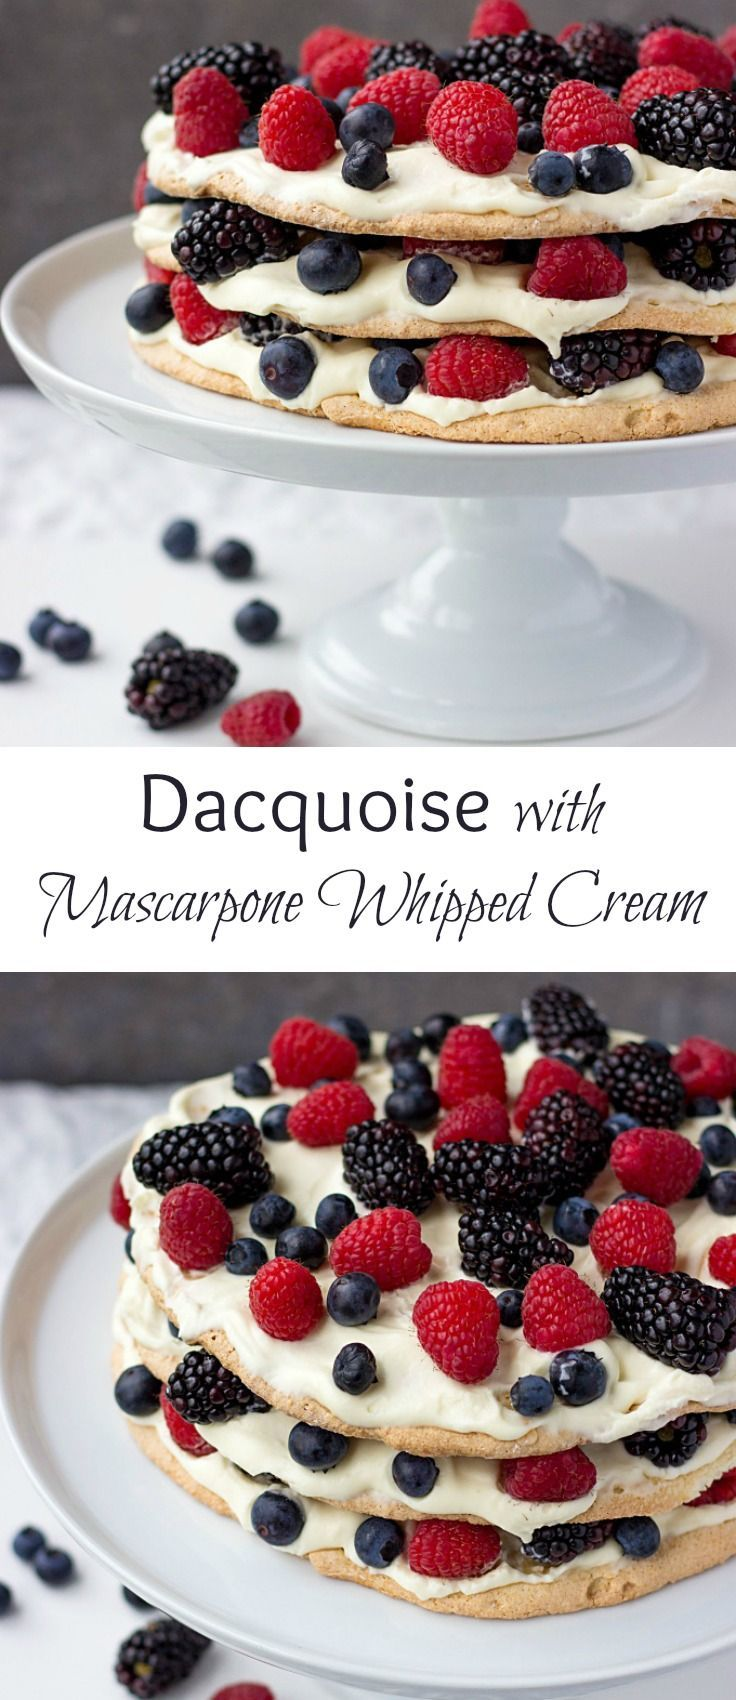 You've got to try Dacquoise Recipe. This cake is a pure deliciousness. Crispy, almondy and absolutely mouthwatering! It's a crowd-pleasing dessert.